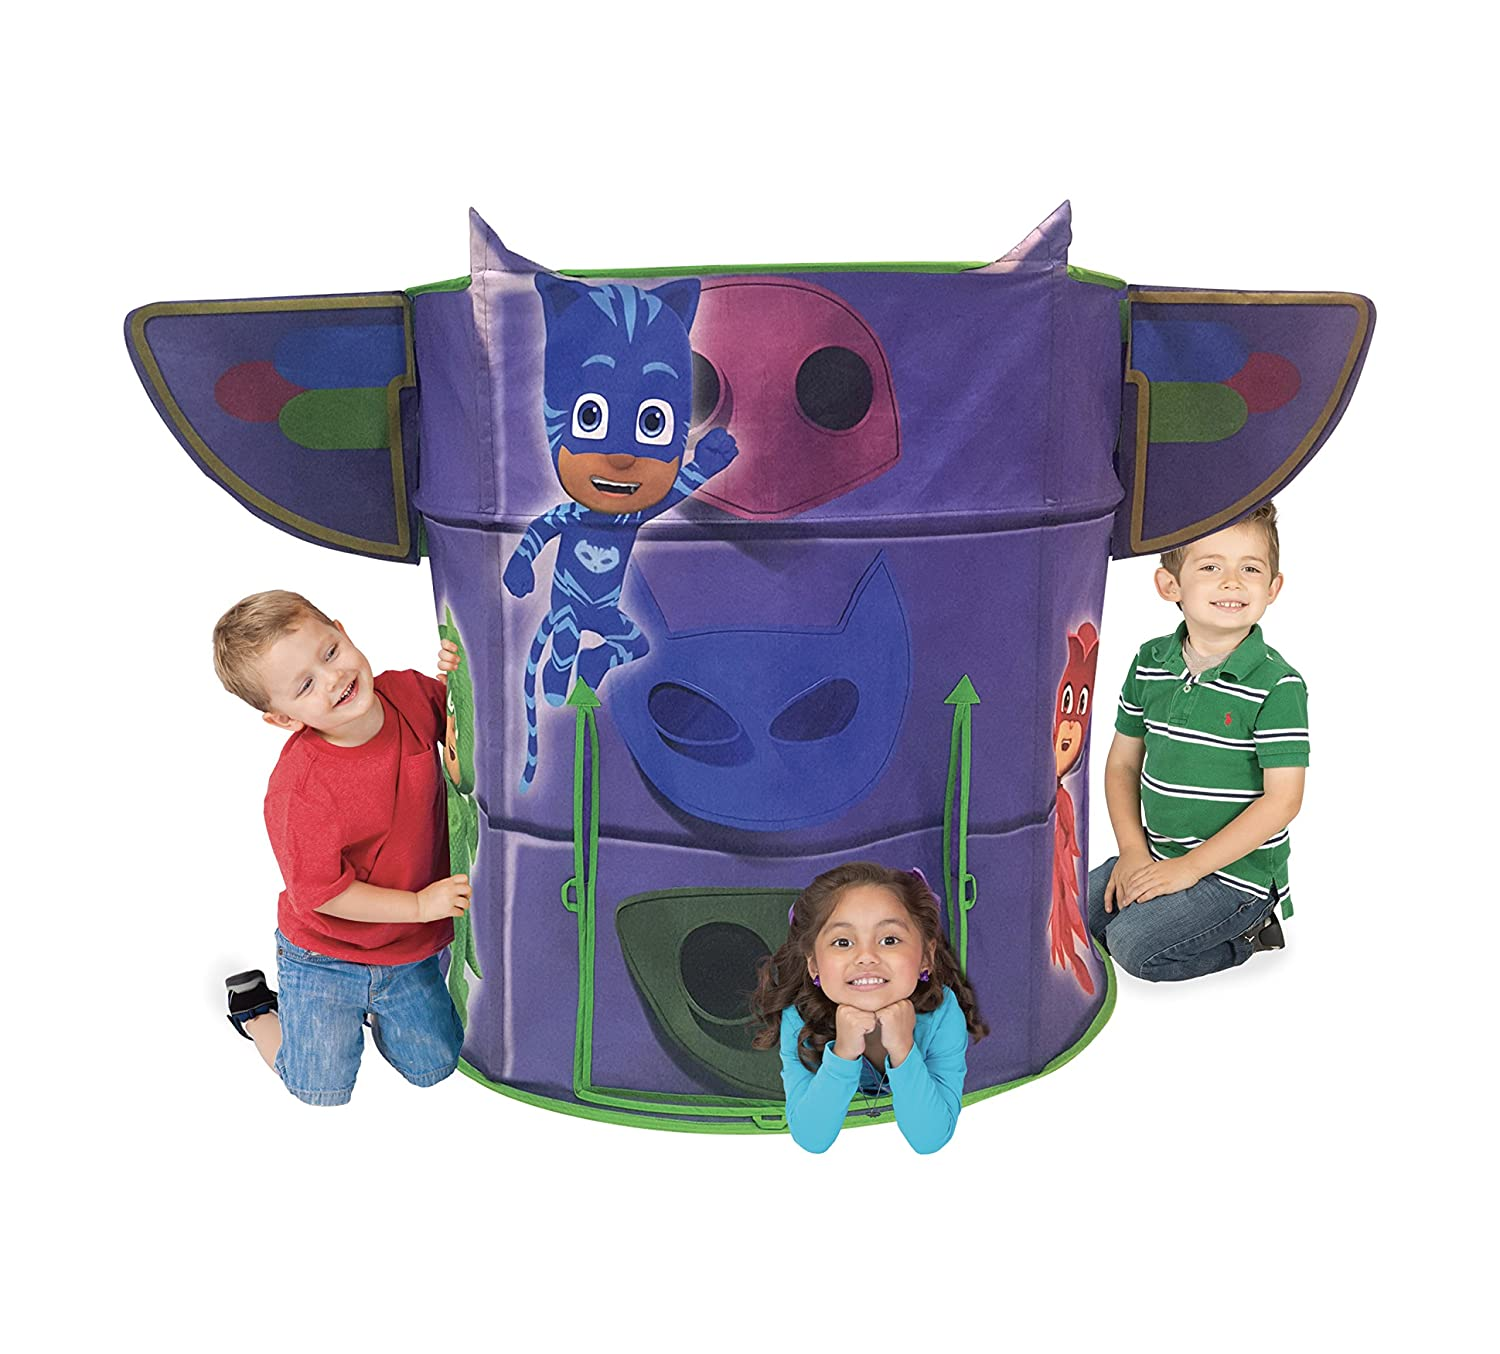 Playhut PJ Masks Headquarters Play Tent Inc. 72865EO